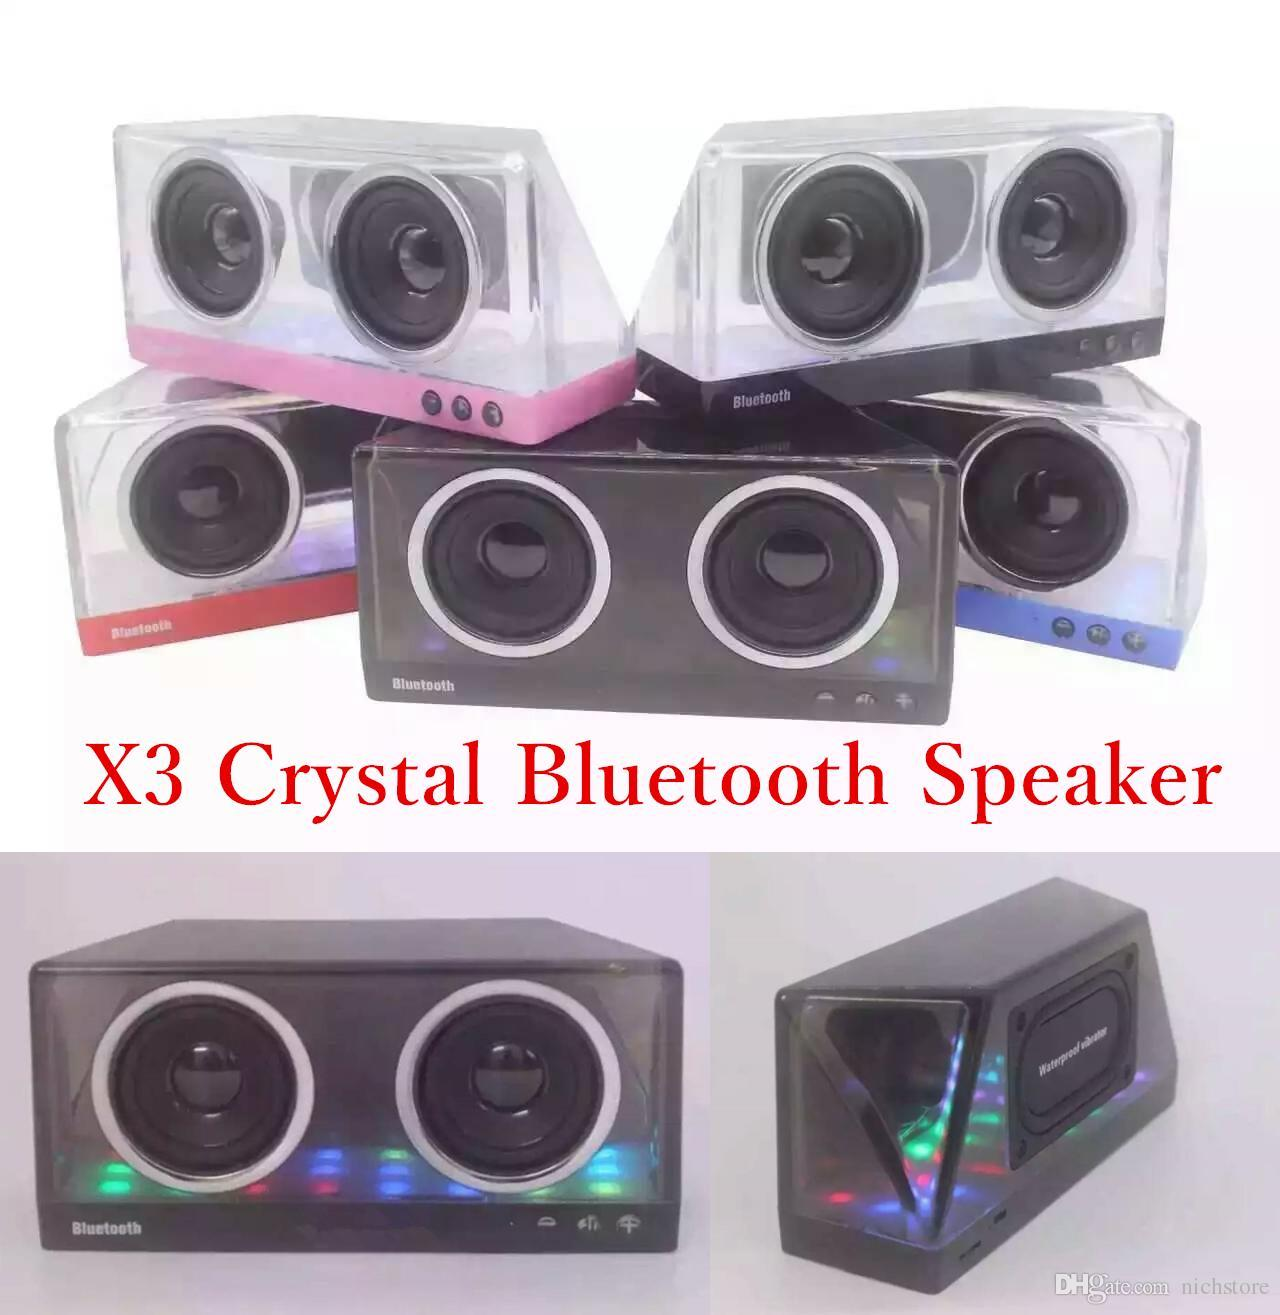 Anko Bluetooth Portable Speaker Crystal Look: Mini Portable X3 Crystal Style Bluetooth Speaker With Mic Wireless Handsfree Stereo Subwoofer